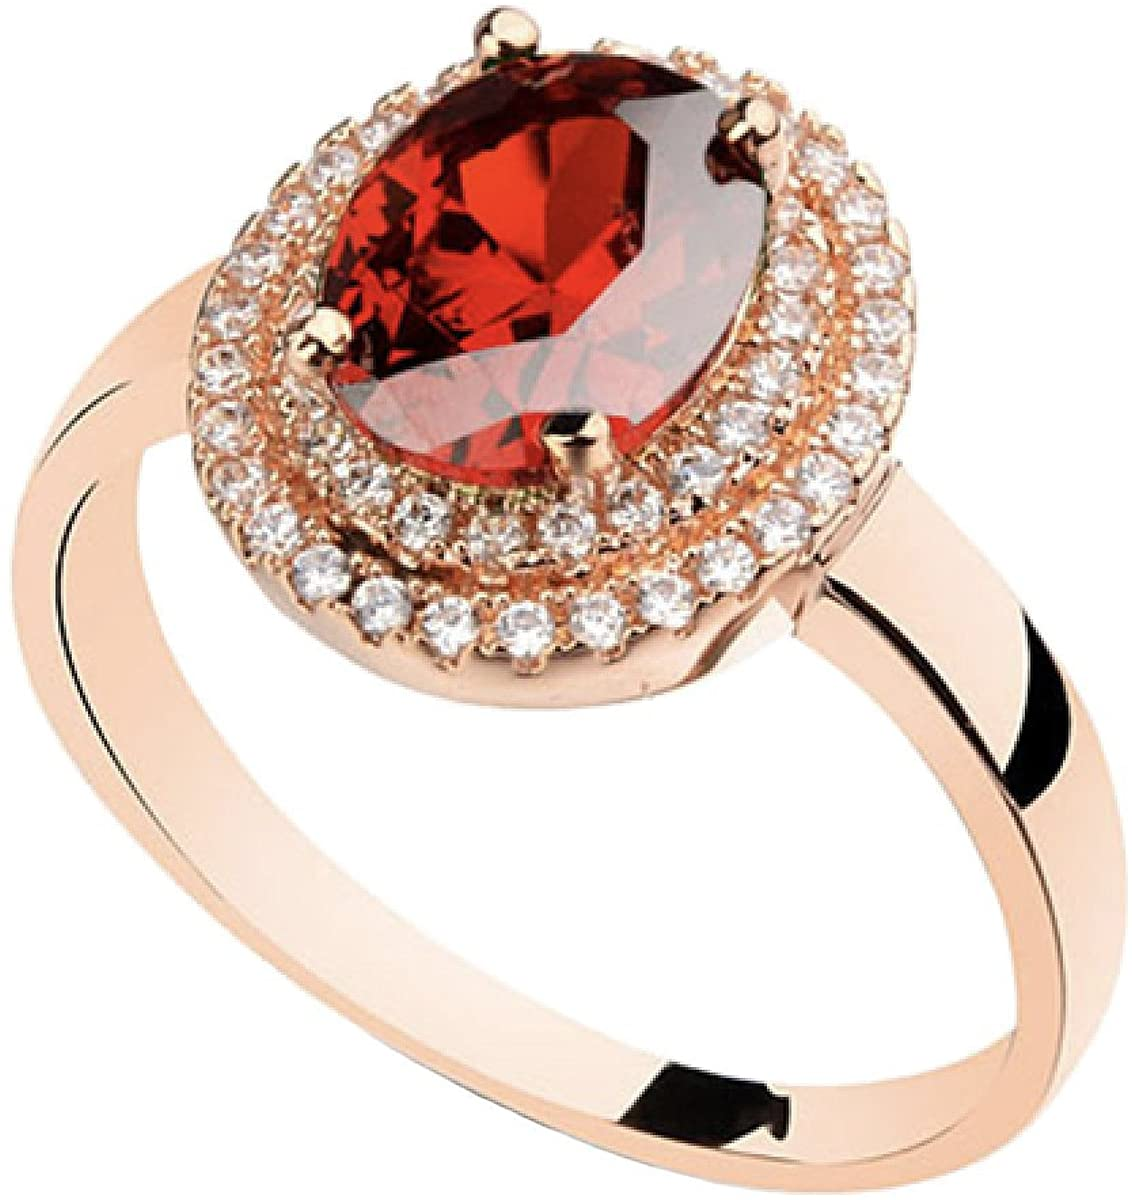 Rose Gold Plated Oval Shaped Gem Style Ring with Ruby Red Swarovski element Crystal and Clear Round Shaped Cubic Zirconia Fashion Jewelry for Women